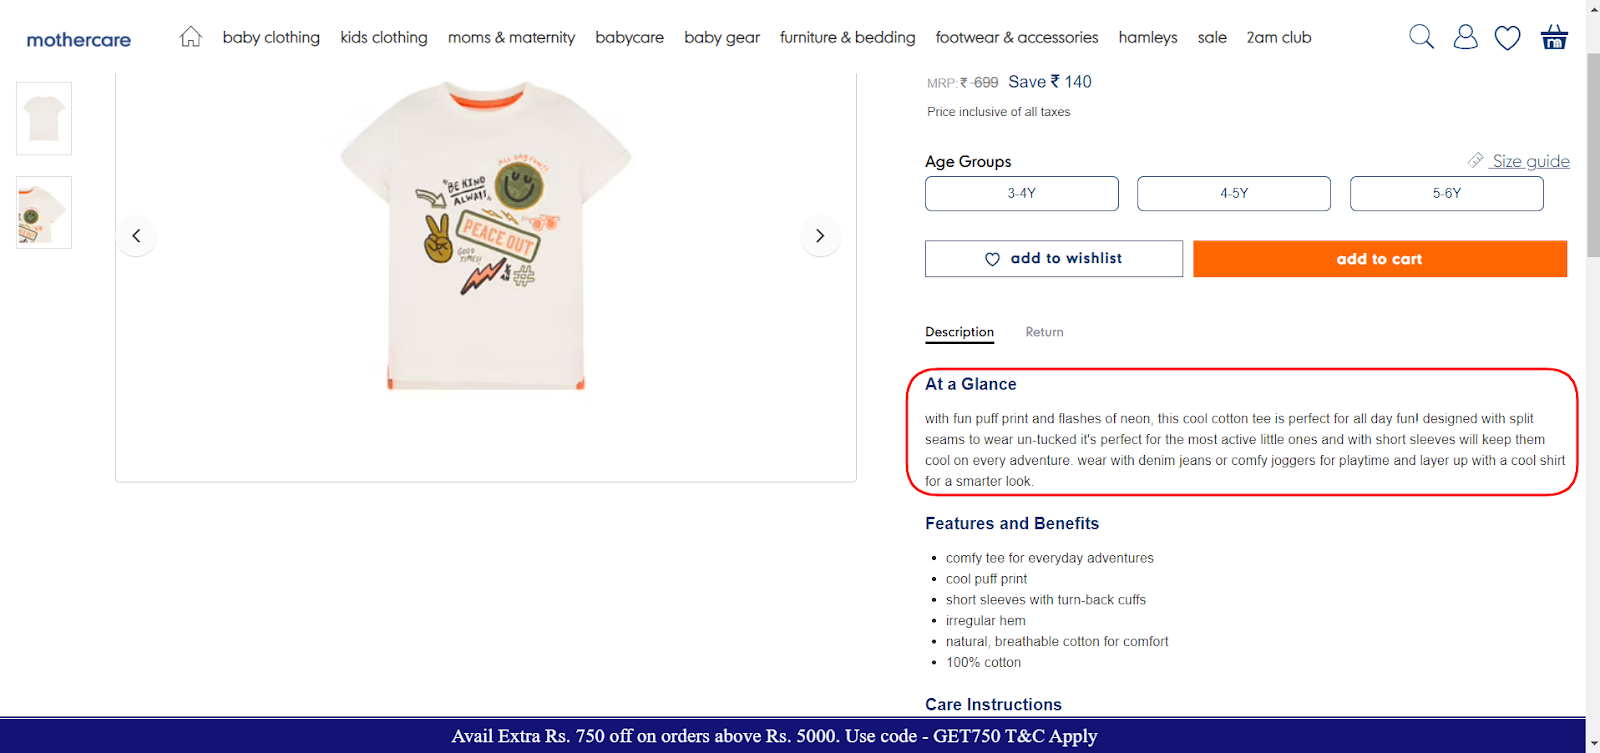 Product description page on Mothercare website